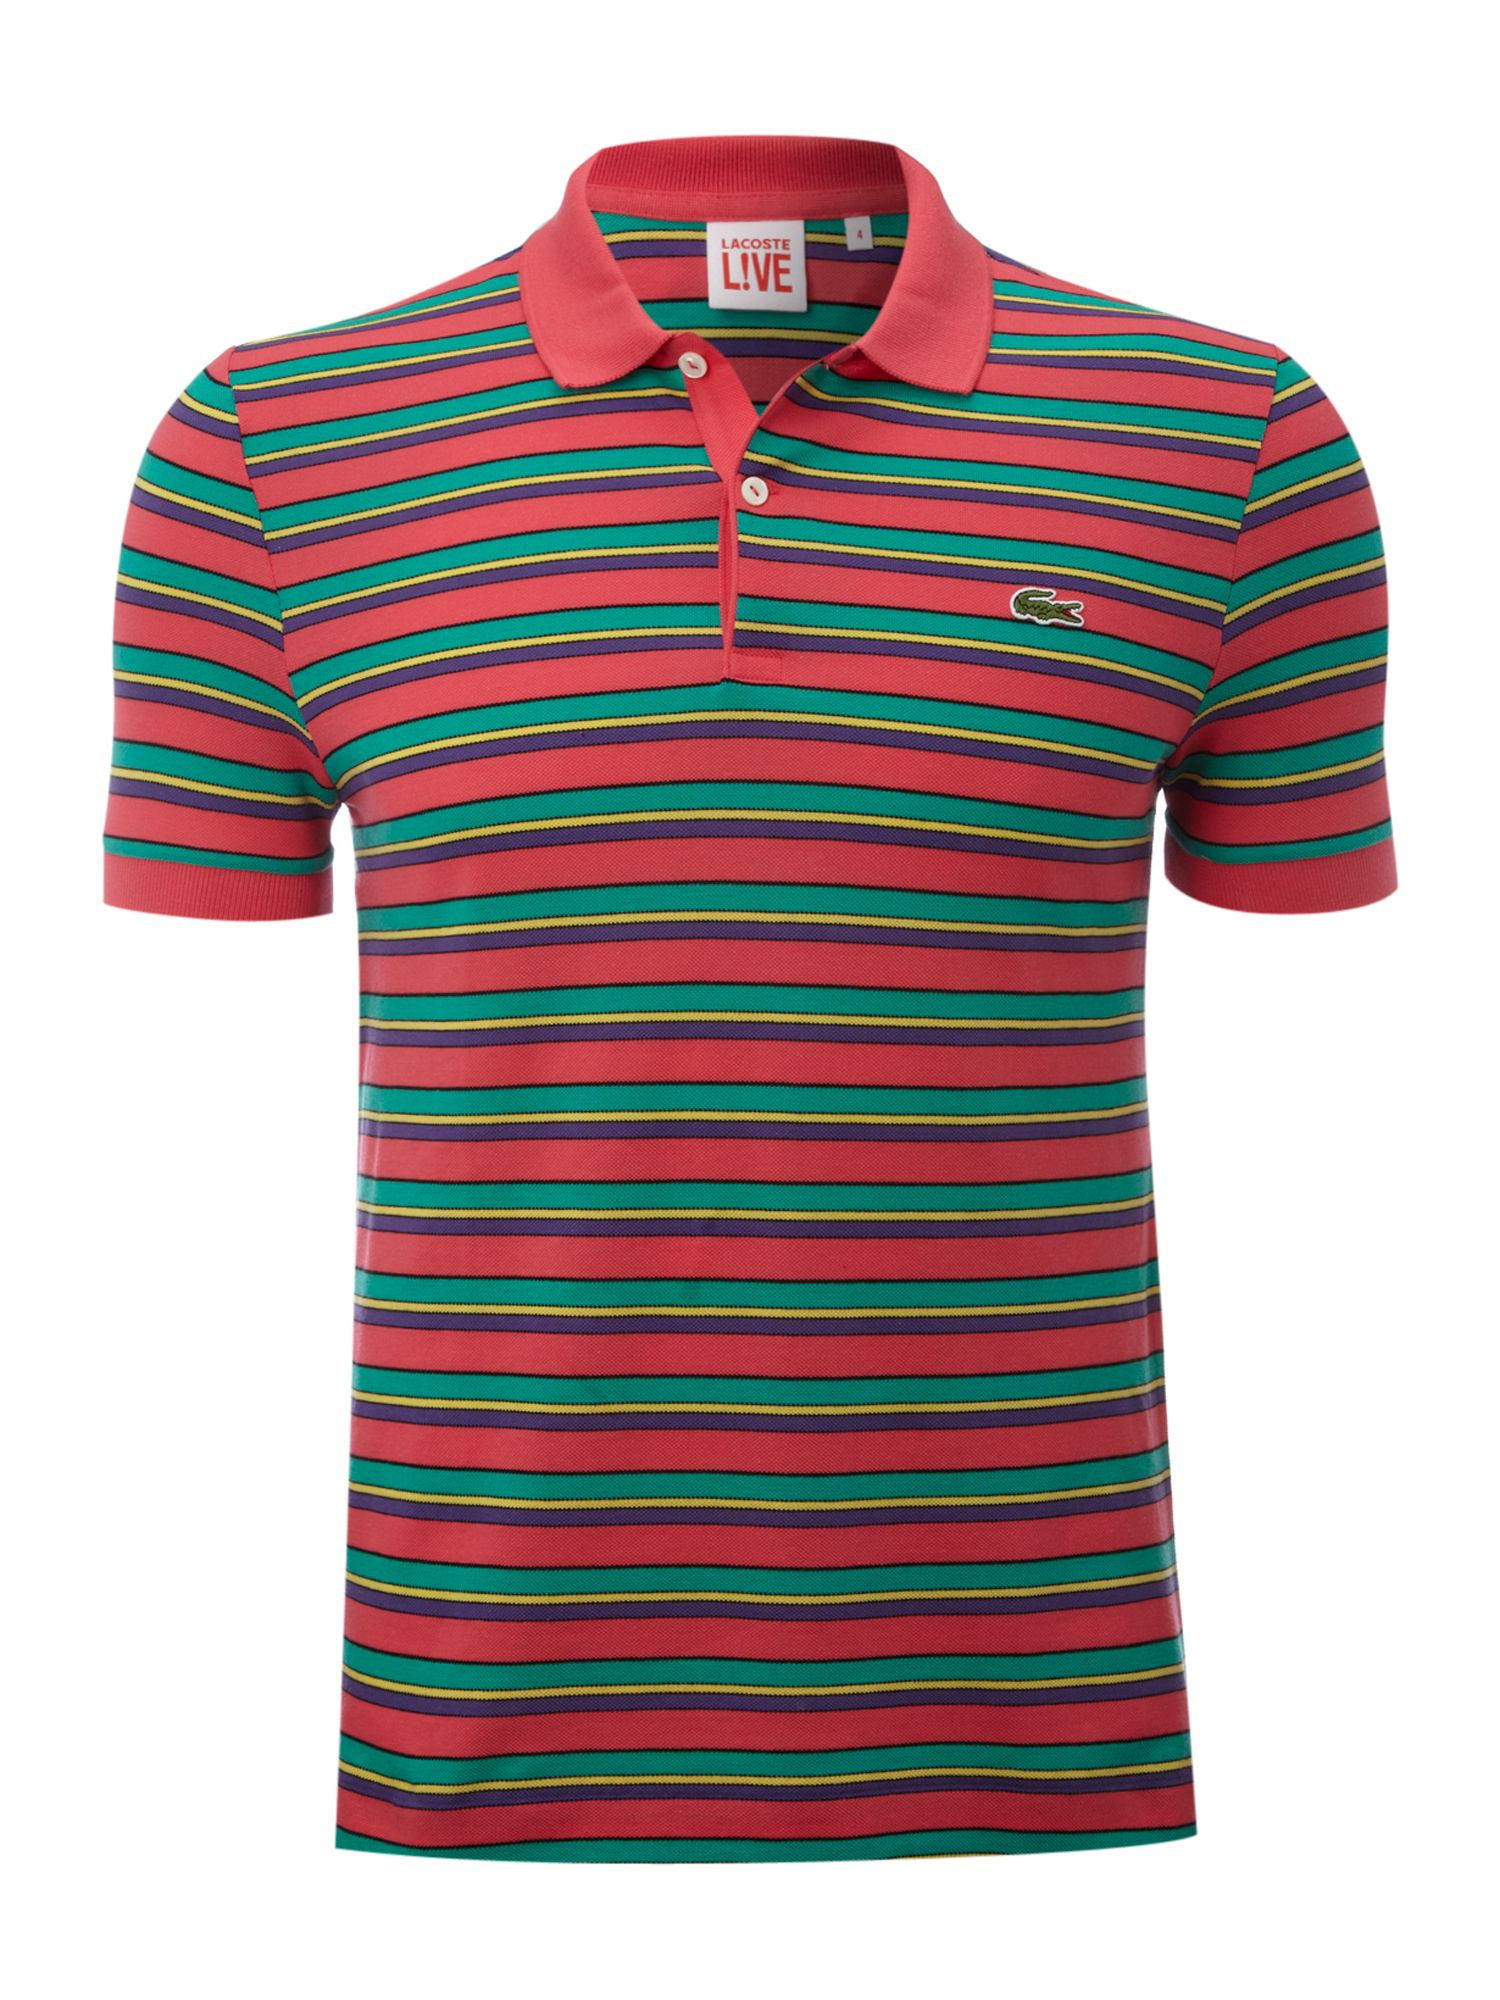 Lacoste Lve Double Stripe Polo Shirt In Pink For Men Lyst